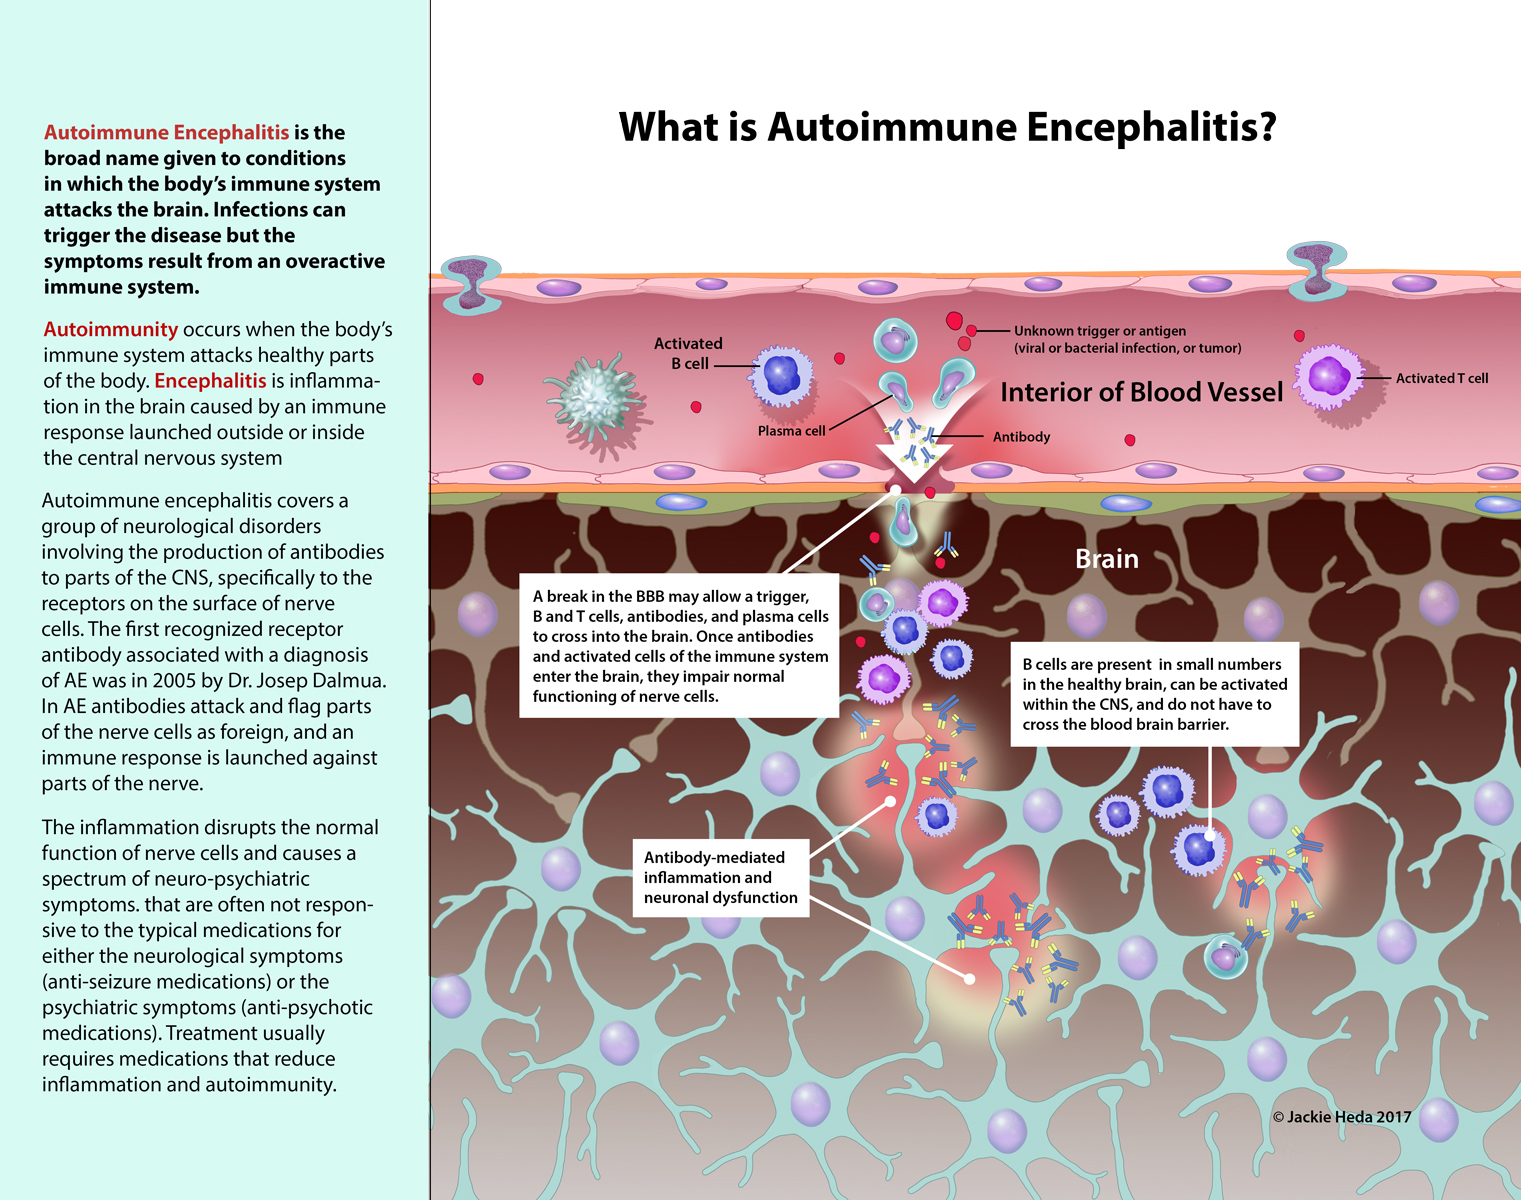 What Is Autoimmune Encephalitis?